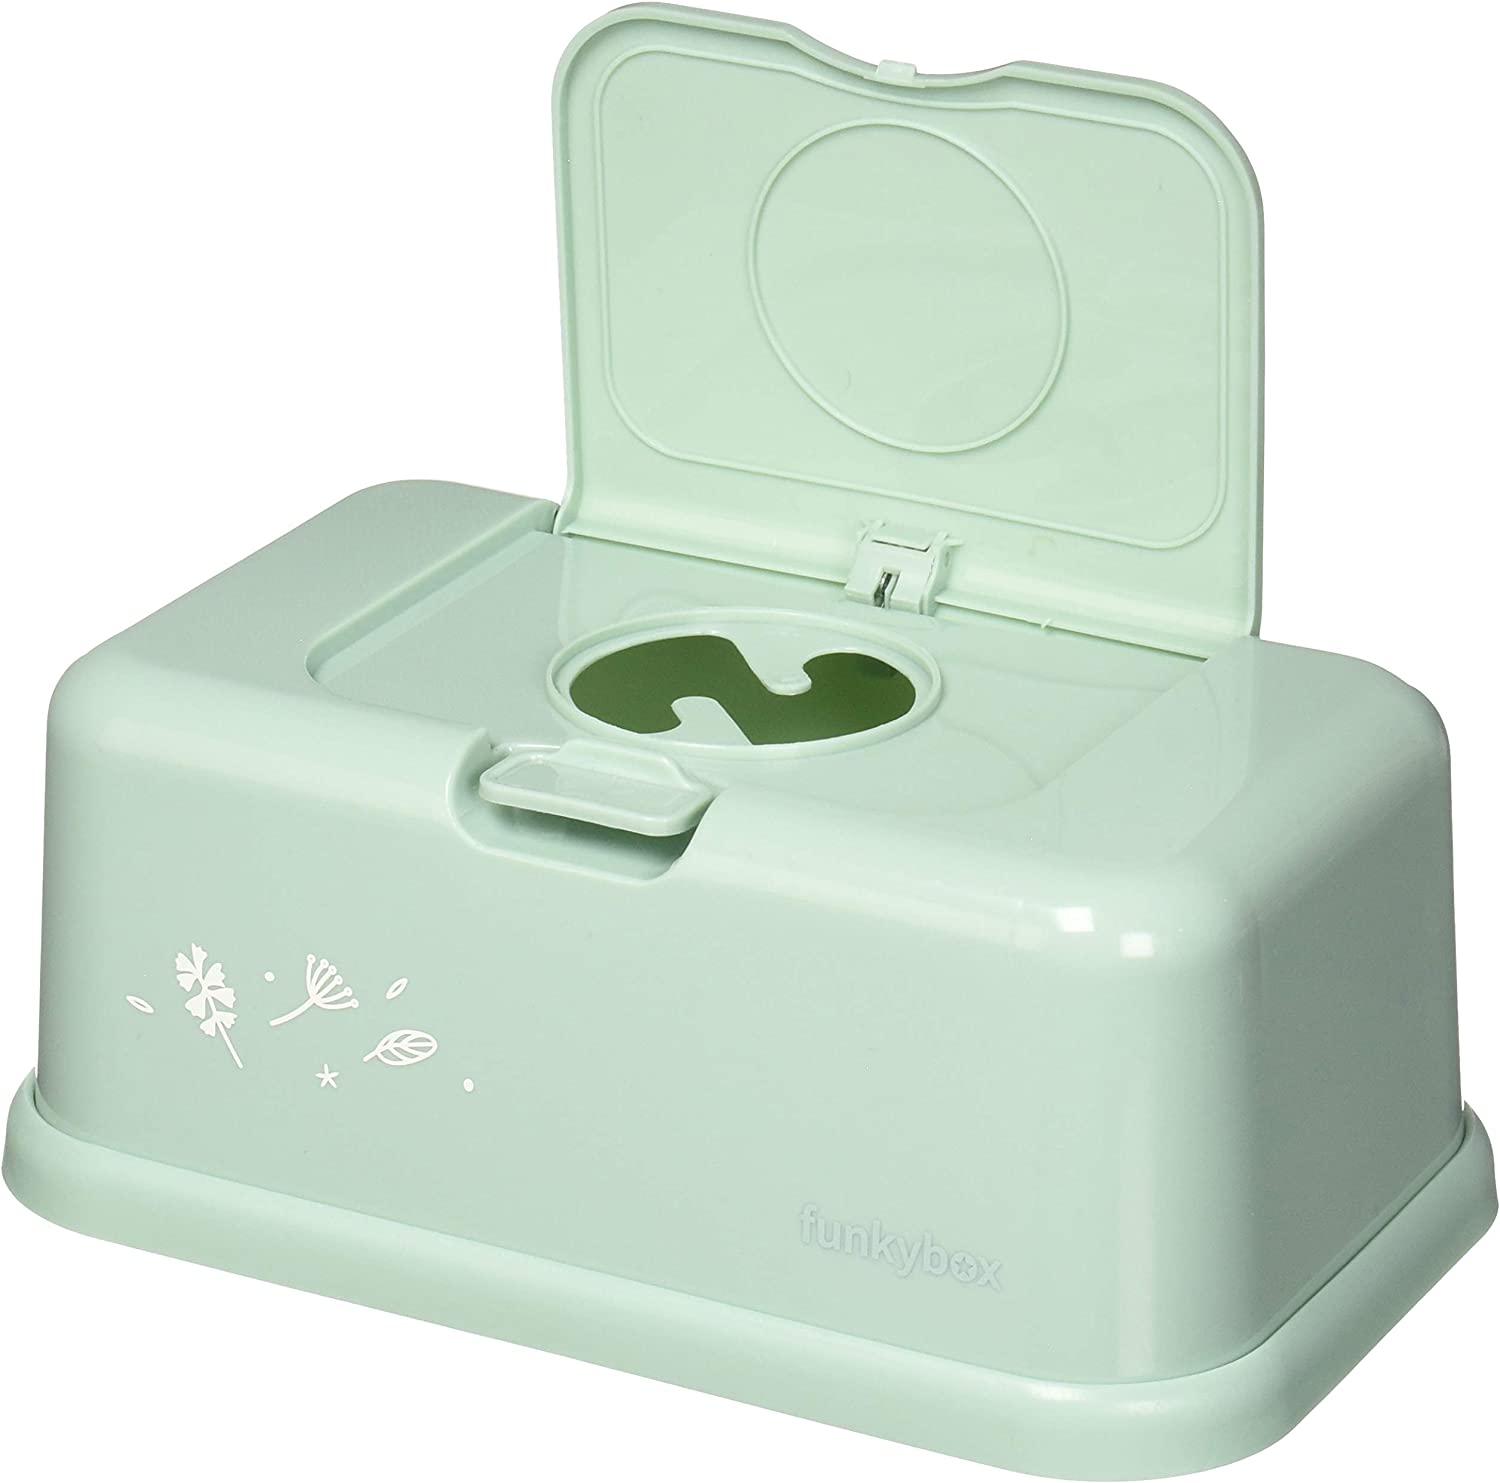 Funkybox FB37 Unisex Wipes Dispenser